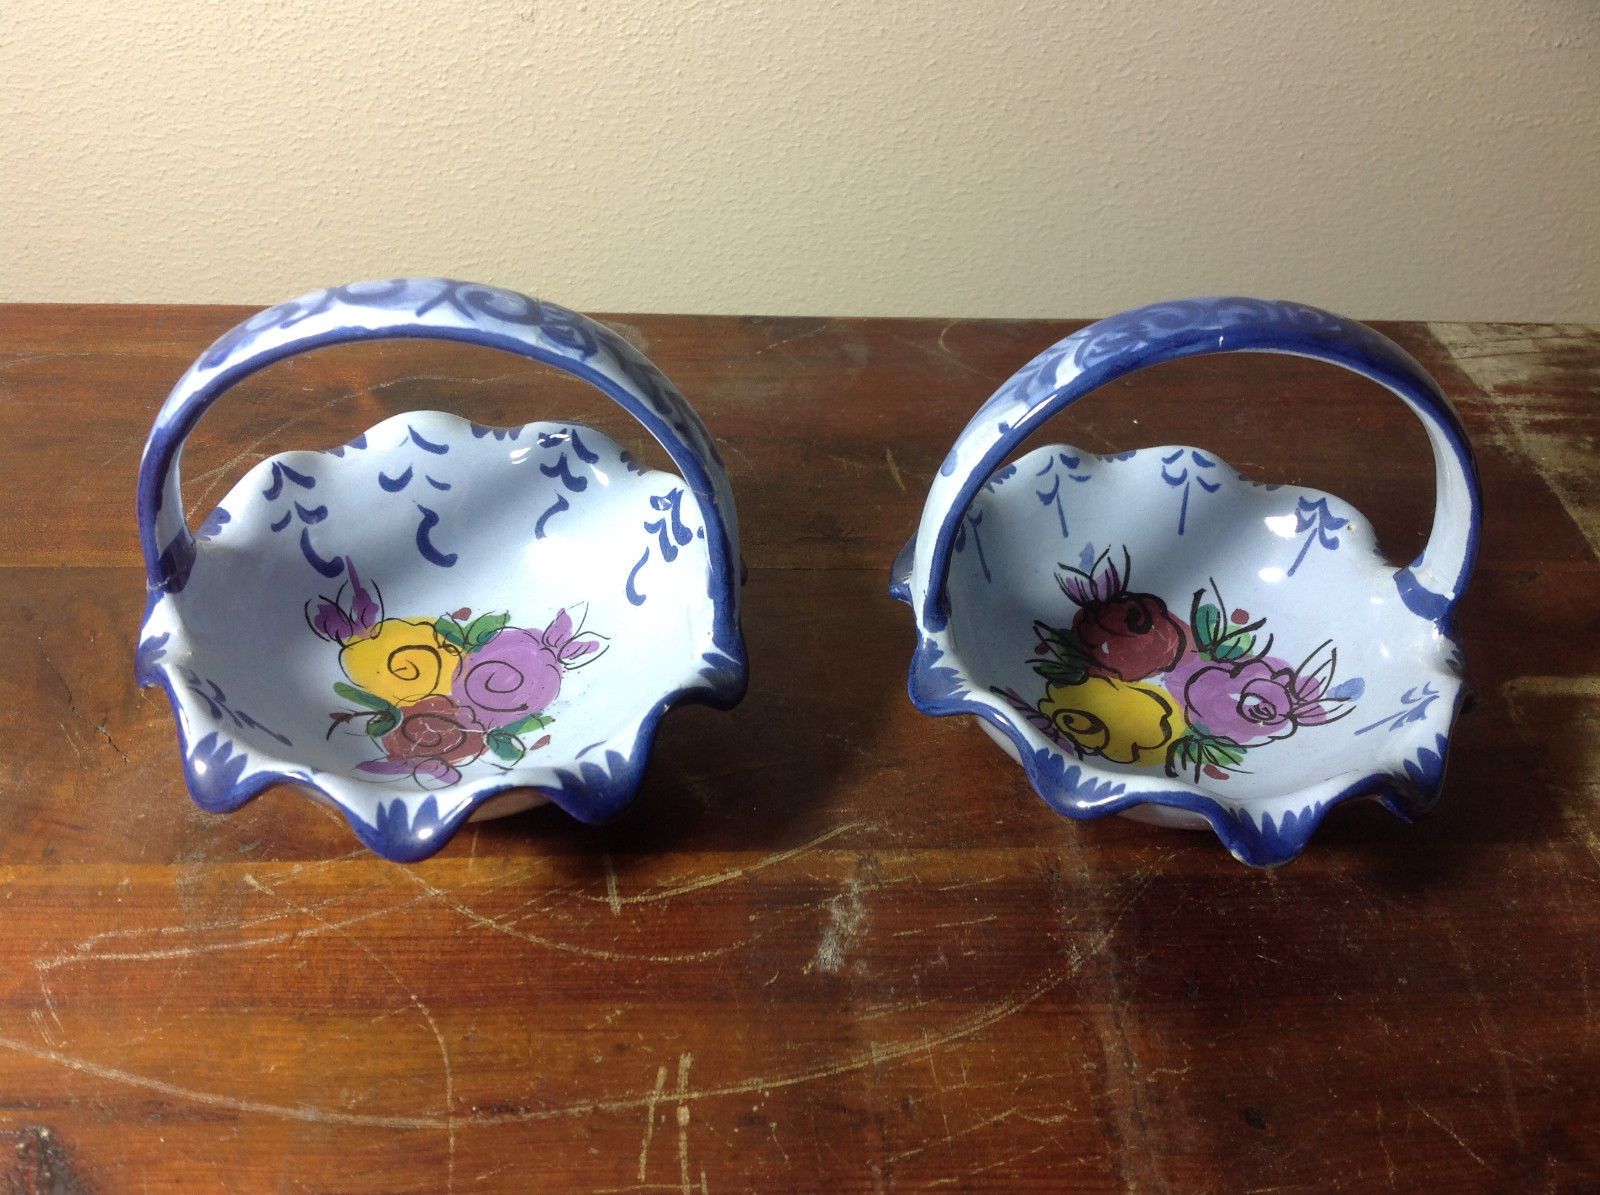 Two Piece Set of Matching Handmade Portuguese Bowls Blue and White with  Flowers